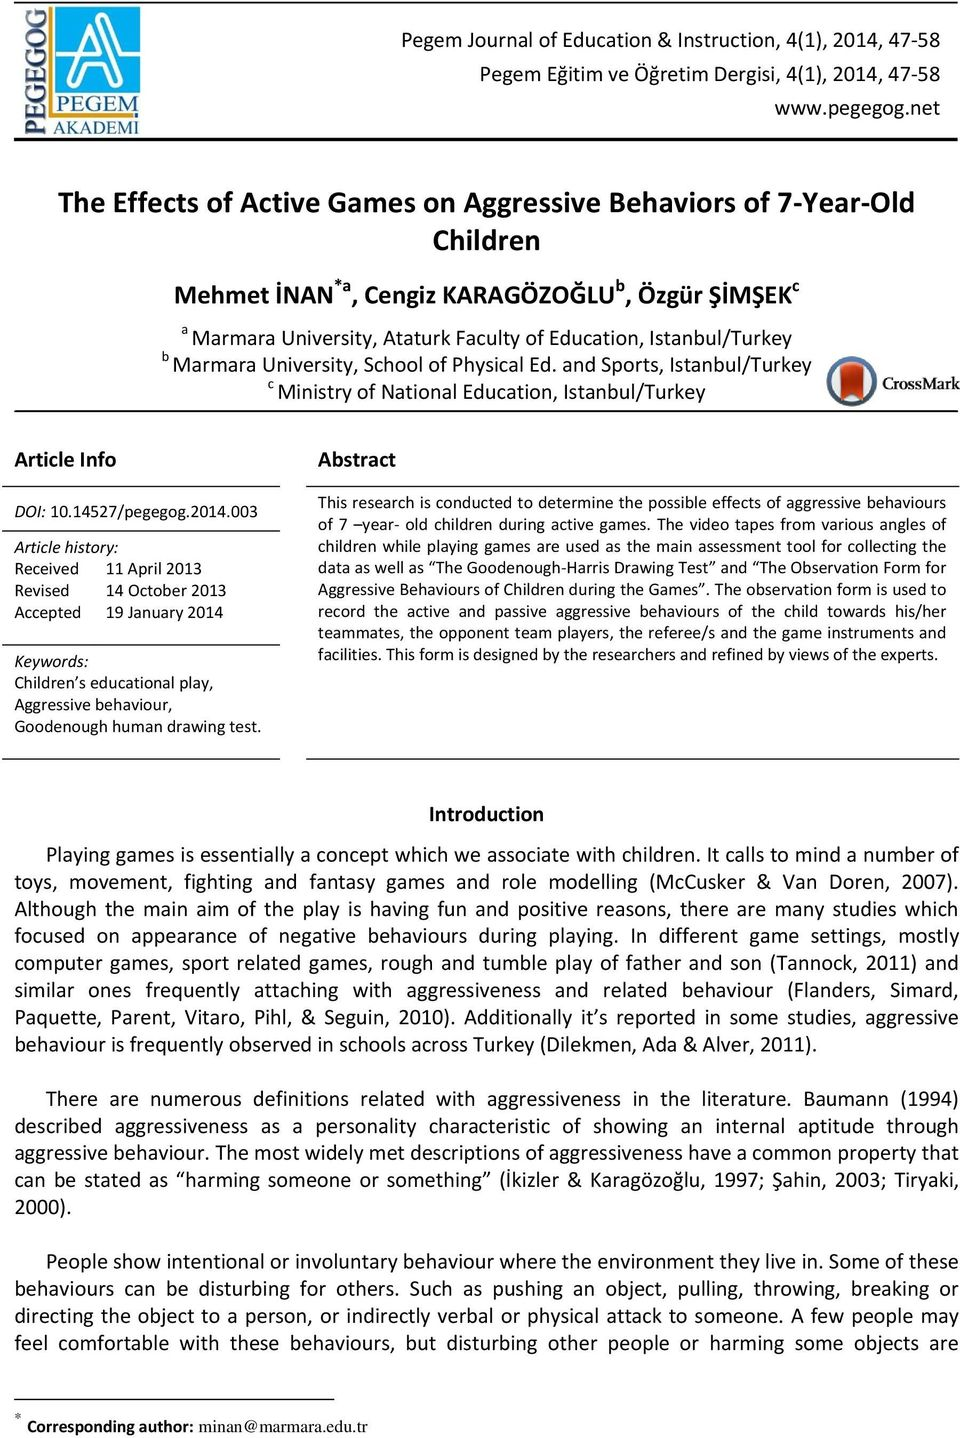 b Marmara University, School of Physical Ed. and Sports, Istanbul/Turkey c Ministry of National Education, Istanbul/Turkey Article Info DOI: 10.14527/pegegog.2014.